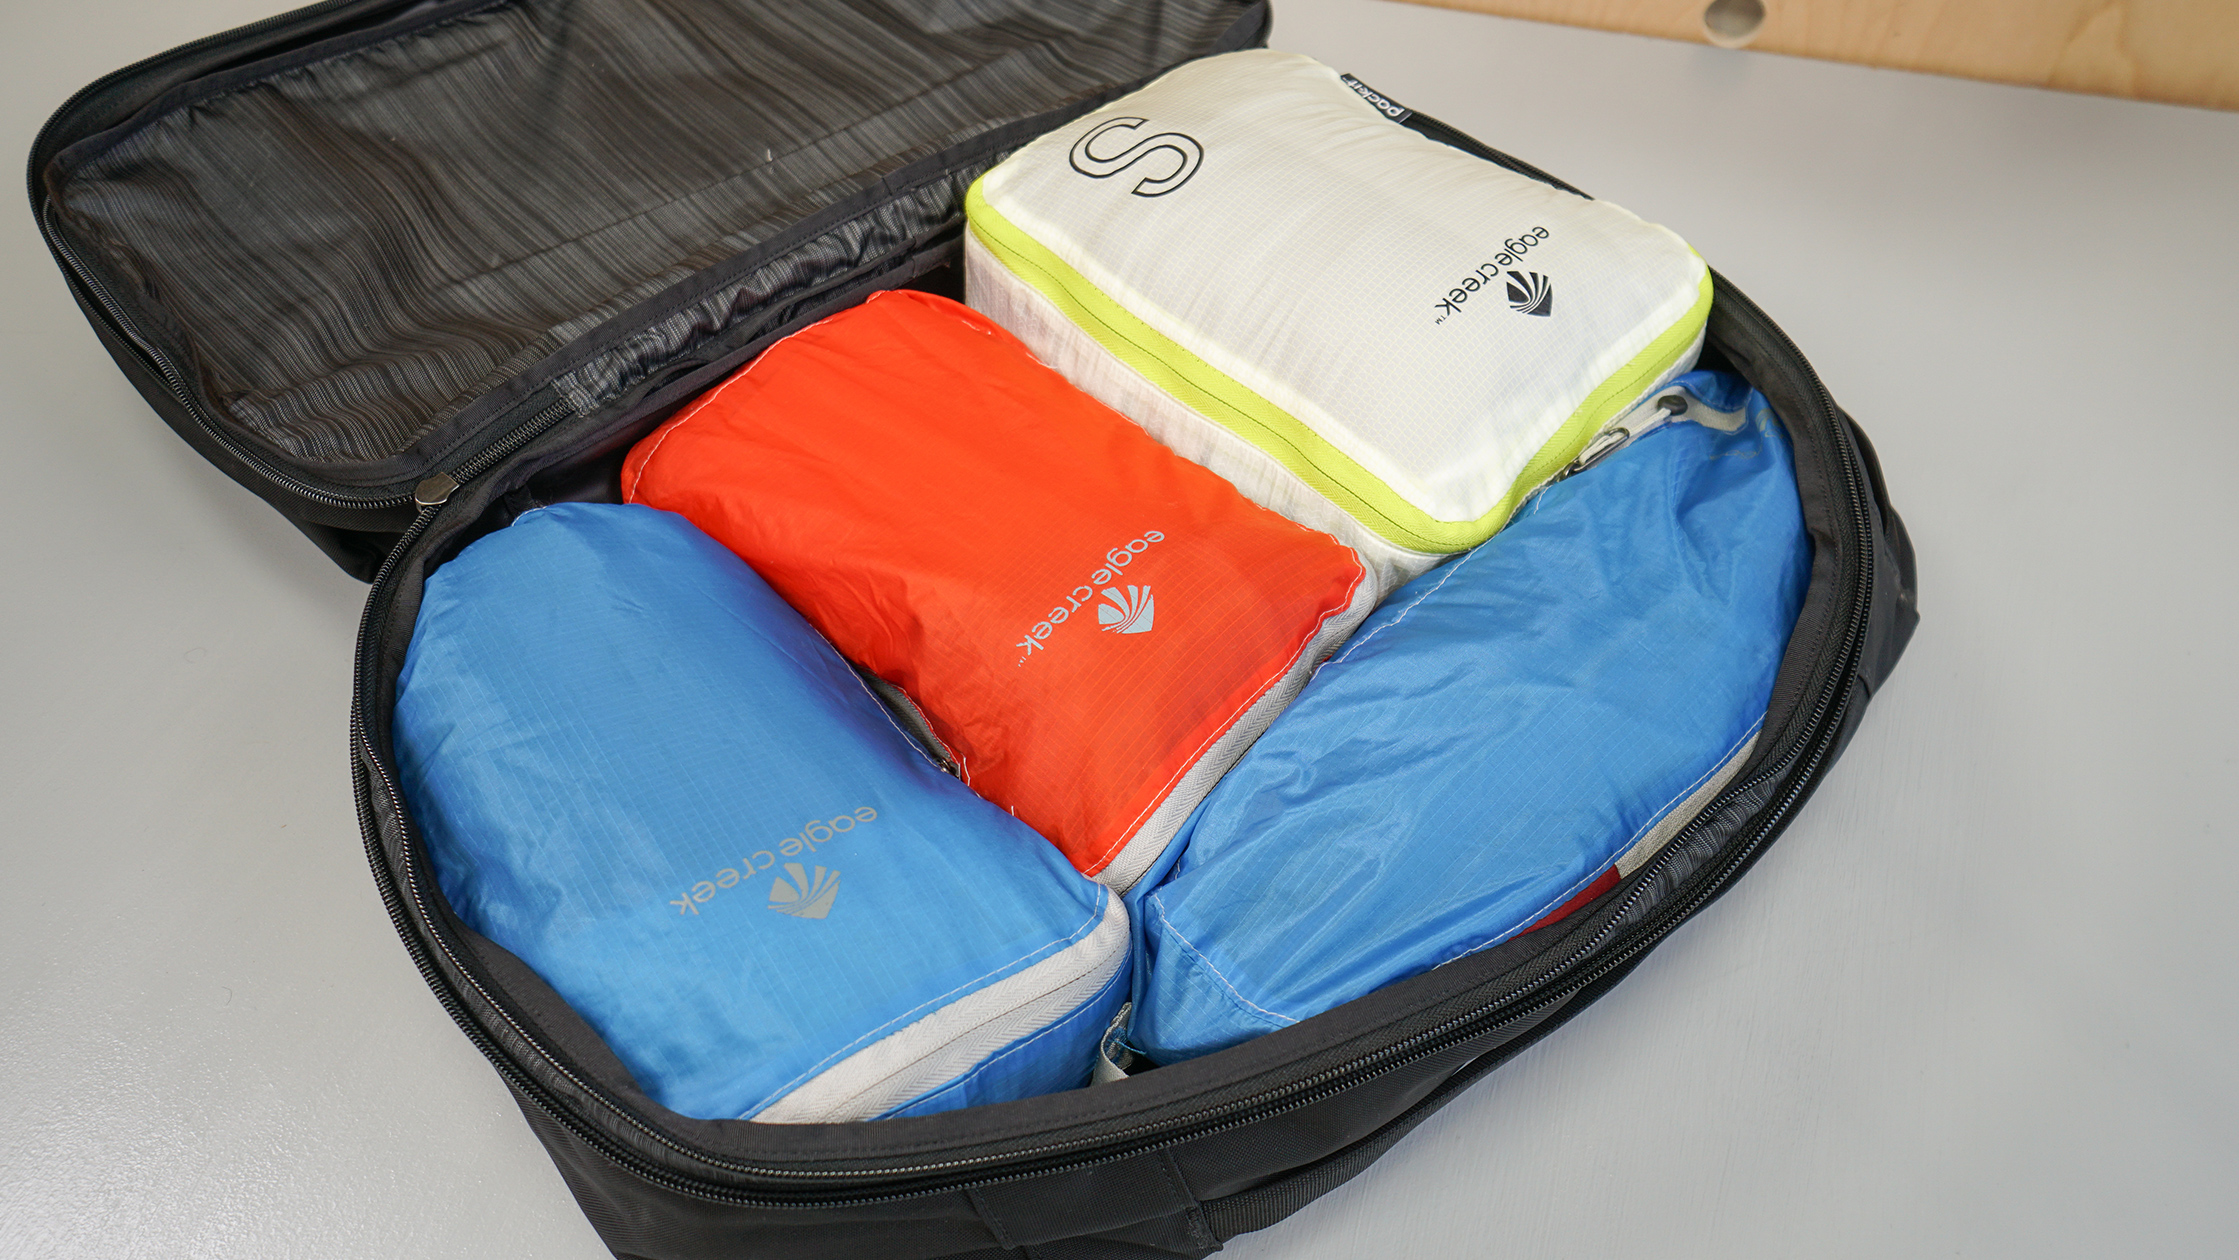 Eagle Creek Specter Packing Cubes In The Main Compartment Of An Arc'teryx Blade 28